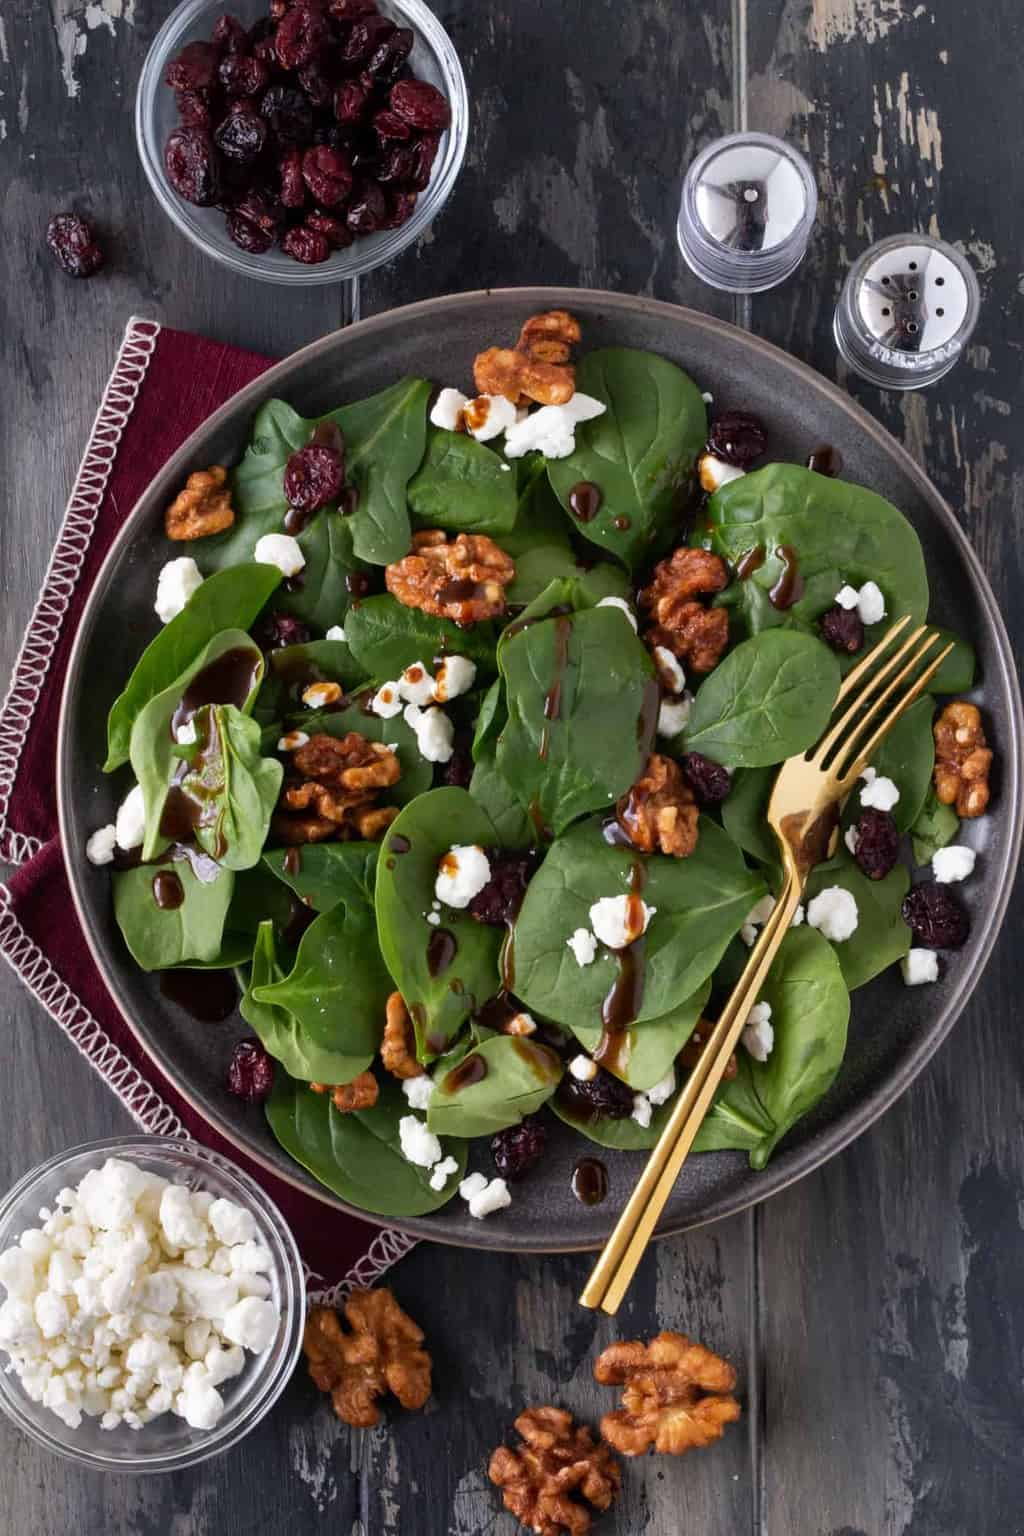 Easy Balsamic Vinaigrette Recipe For Spinach Salad Or Any Salad